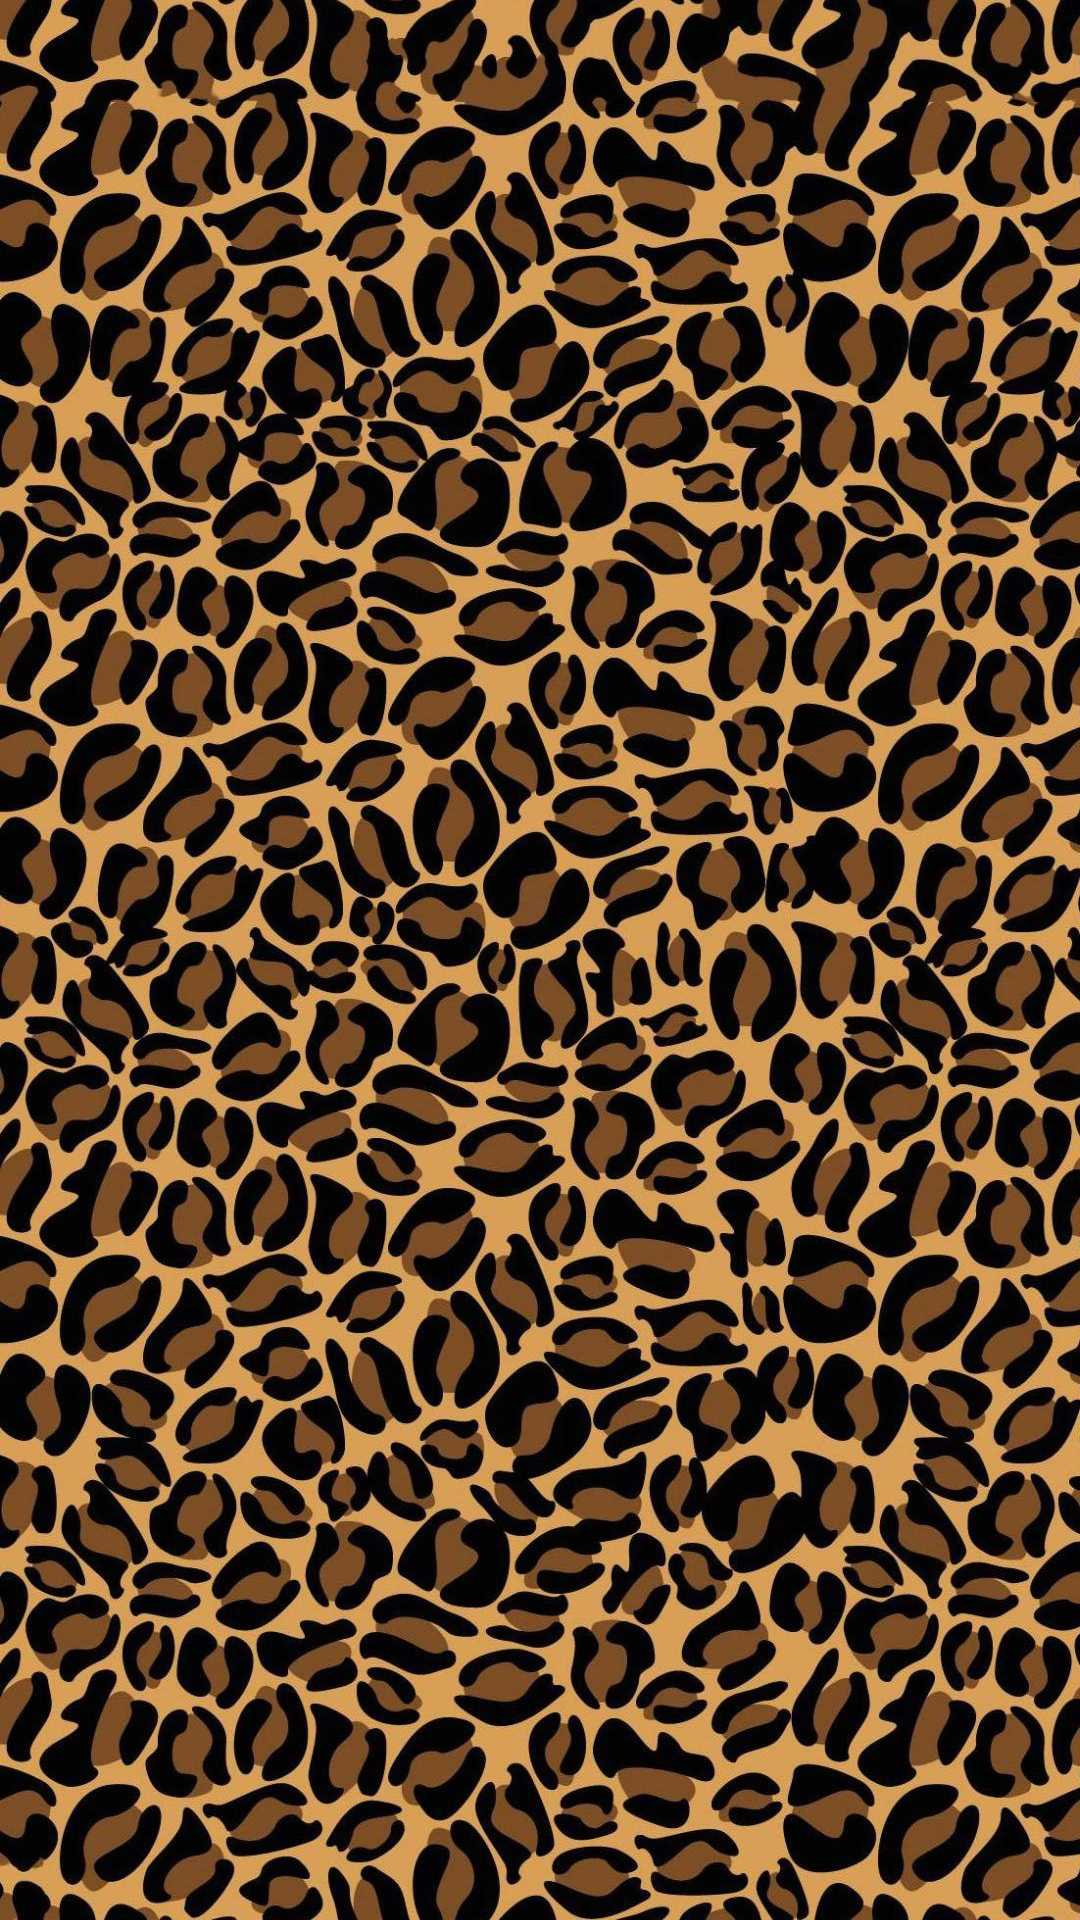 Leopard Print Wallpaper 1